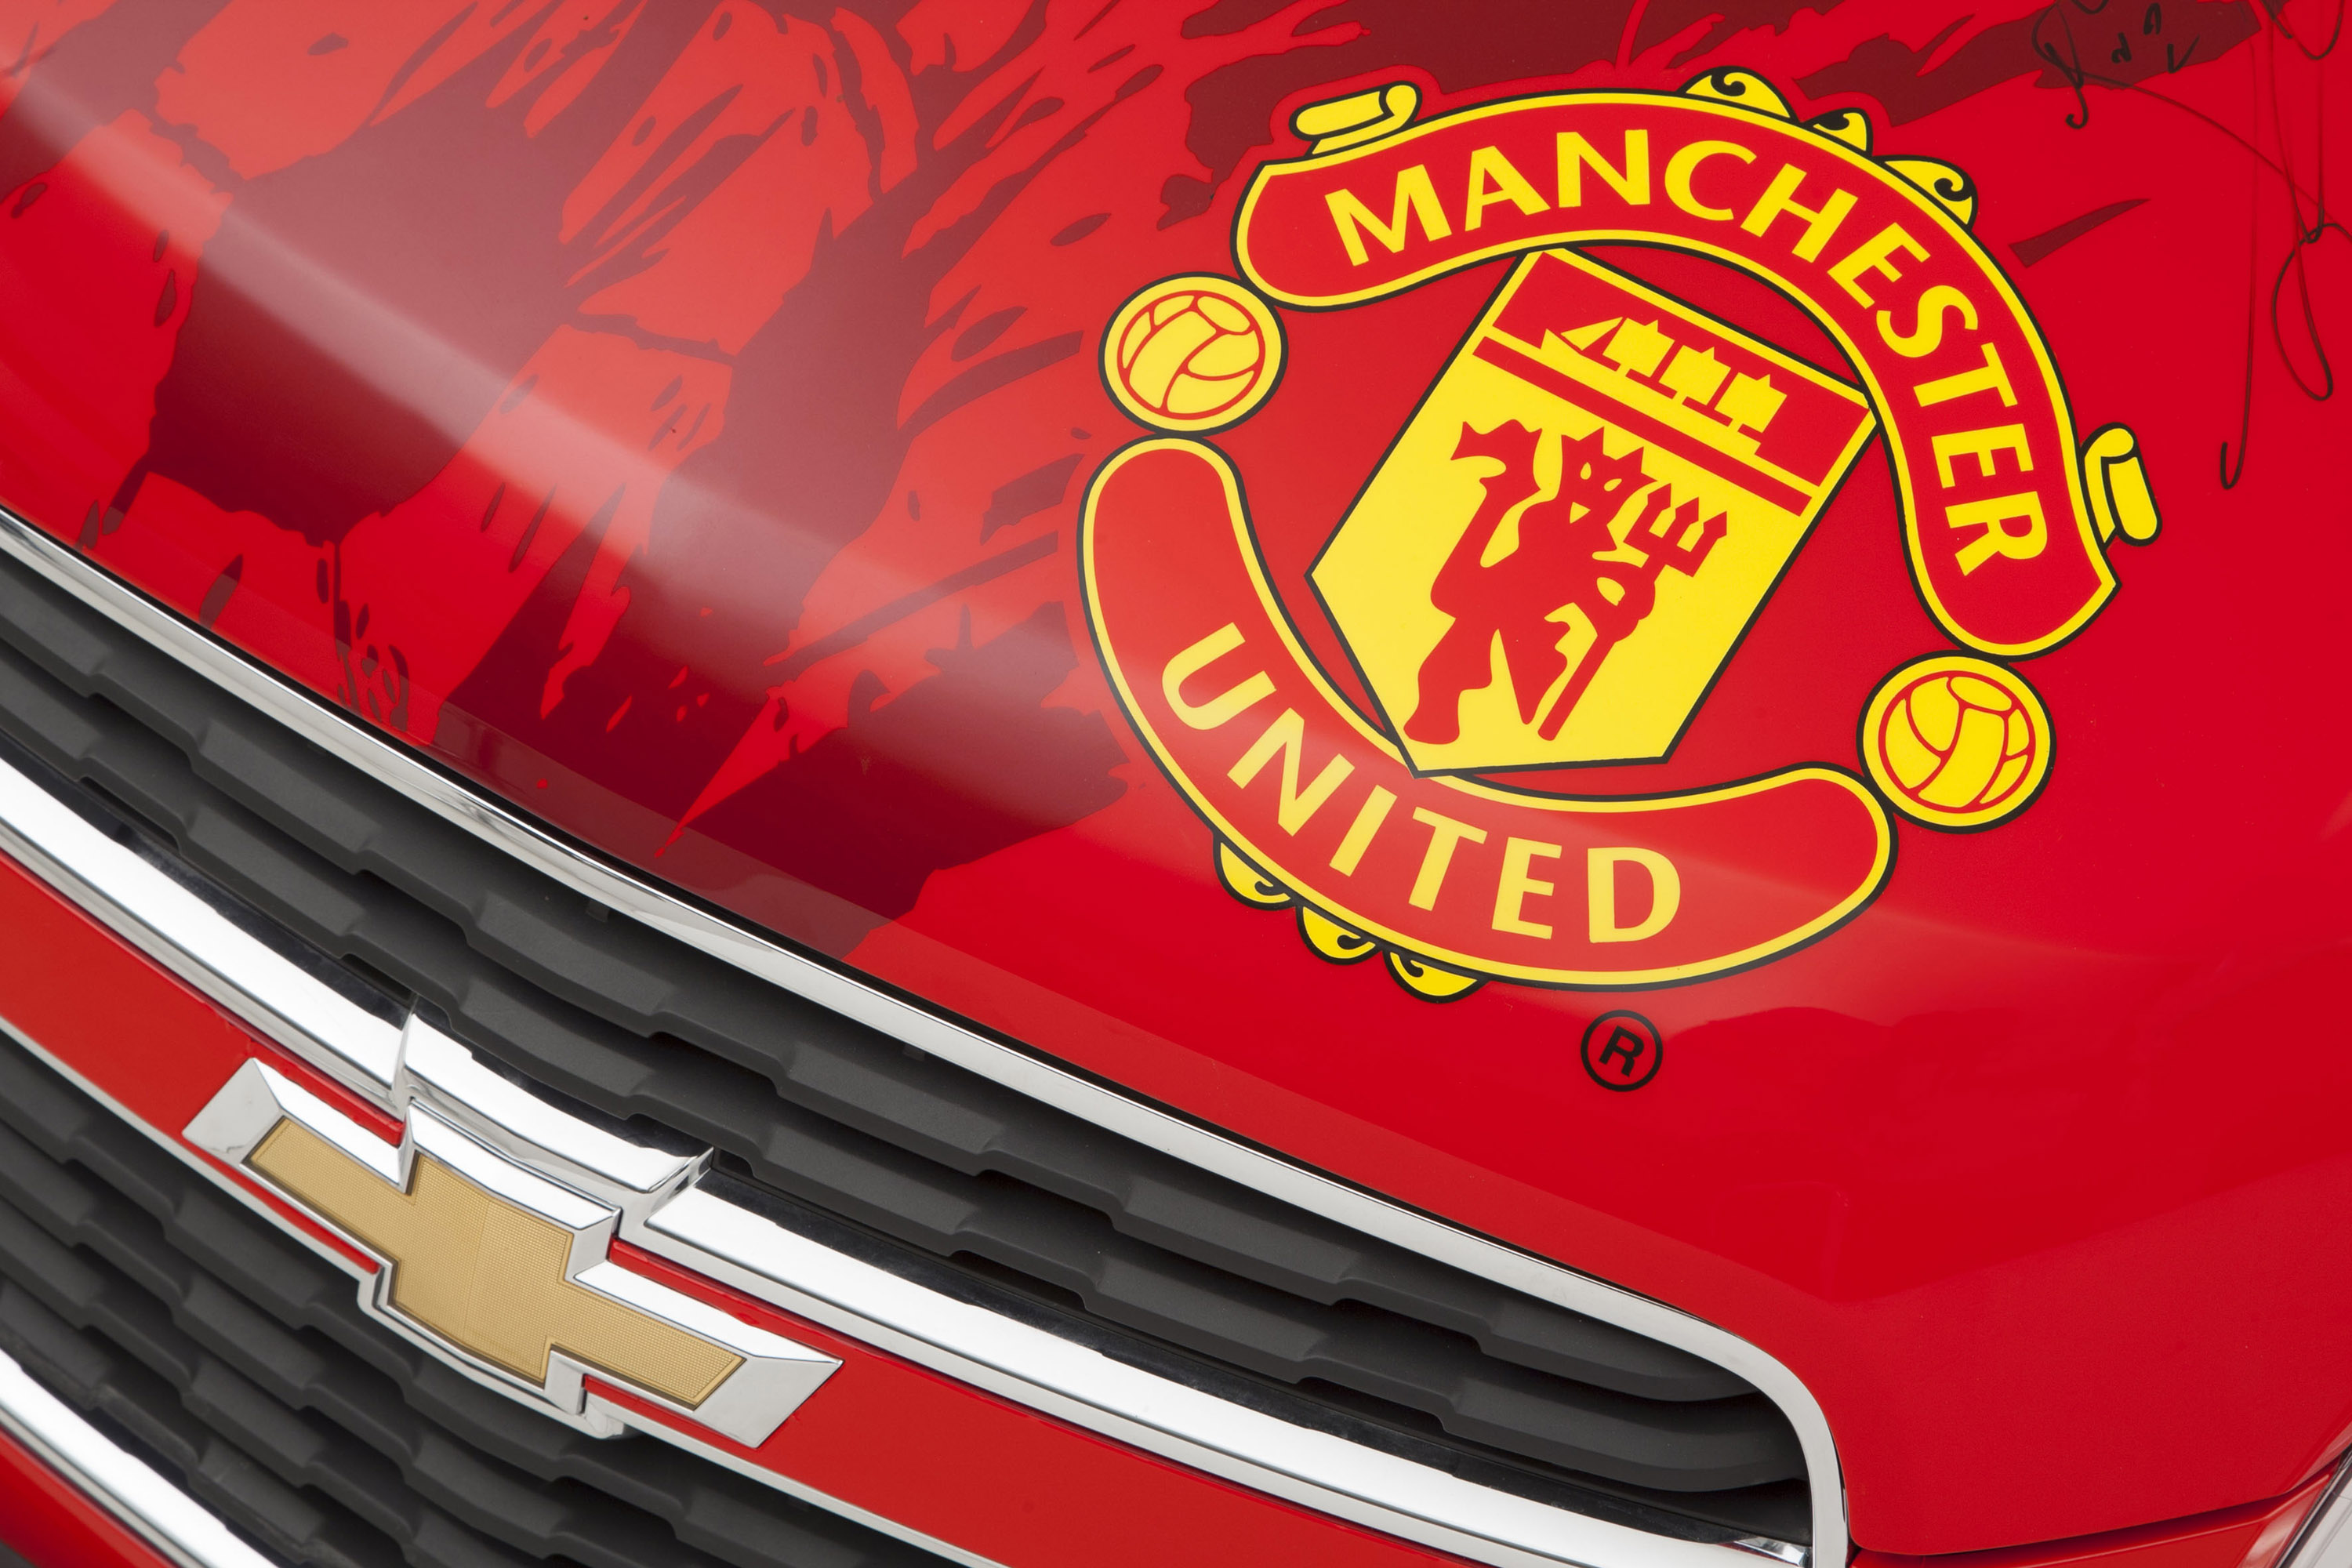 Wallpaper Hd Mu Manchester United Themed Chevrolet Trax Auction